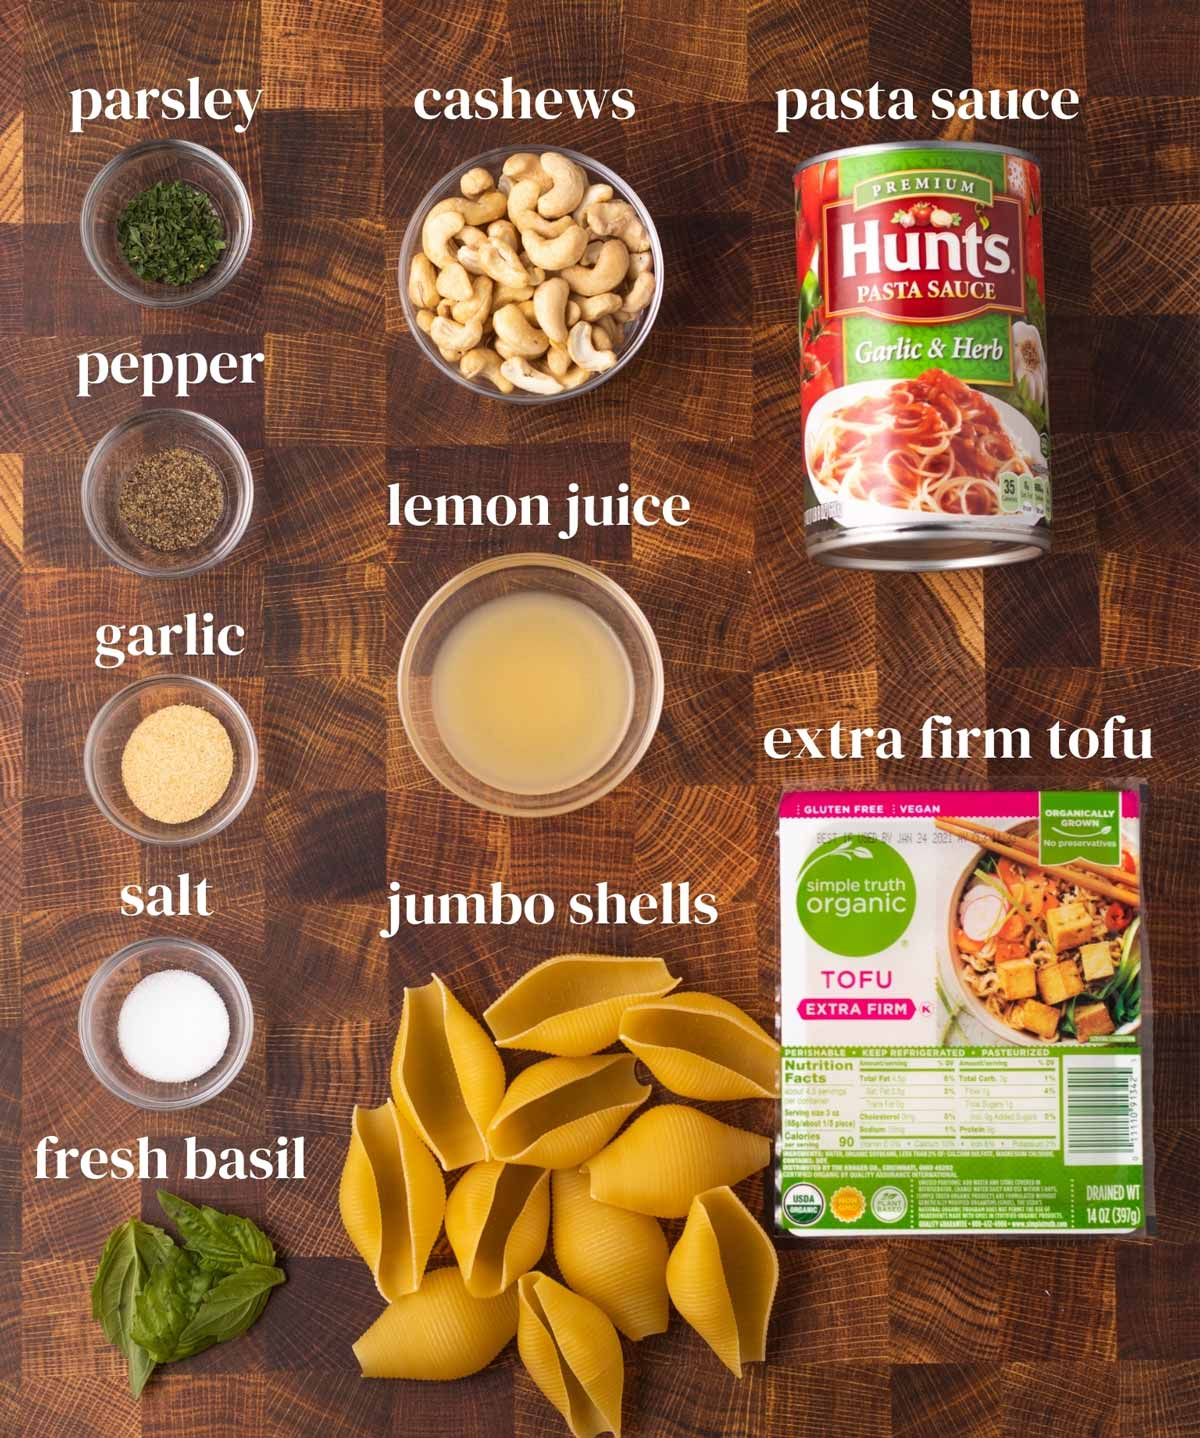 ingredients for vegan stuffed shells into tomato sauce with plant-based tofu ricotta